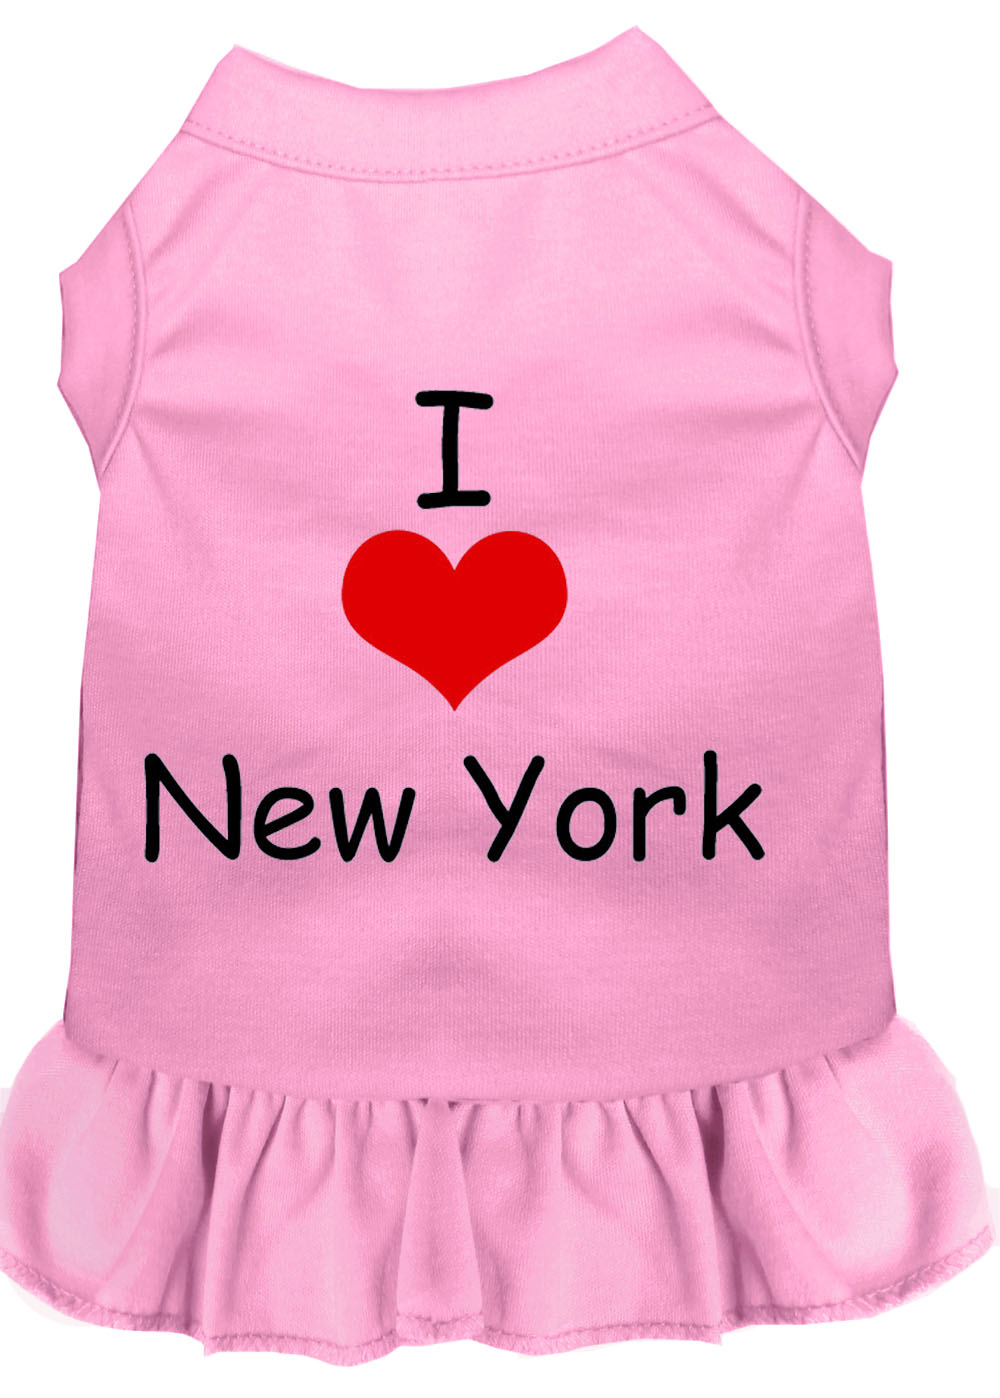 I Heart New York Screen Print Dress Light Pink